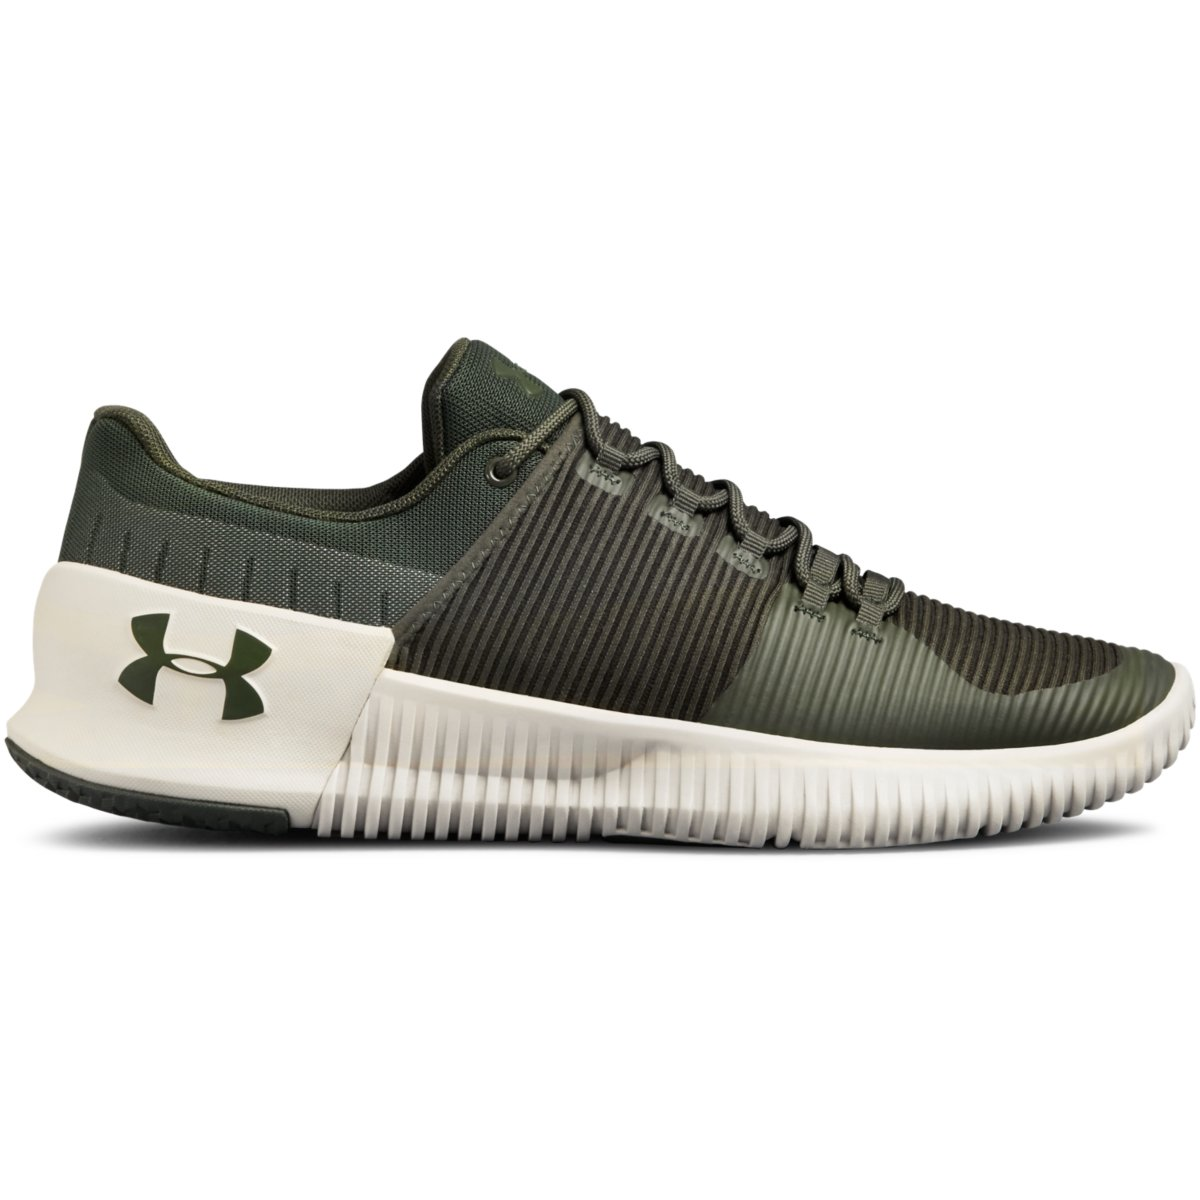 Under Armour Ultimate Speed Train Shoe | Shoes and overlays